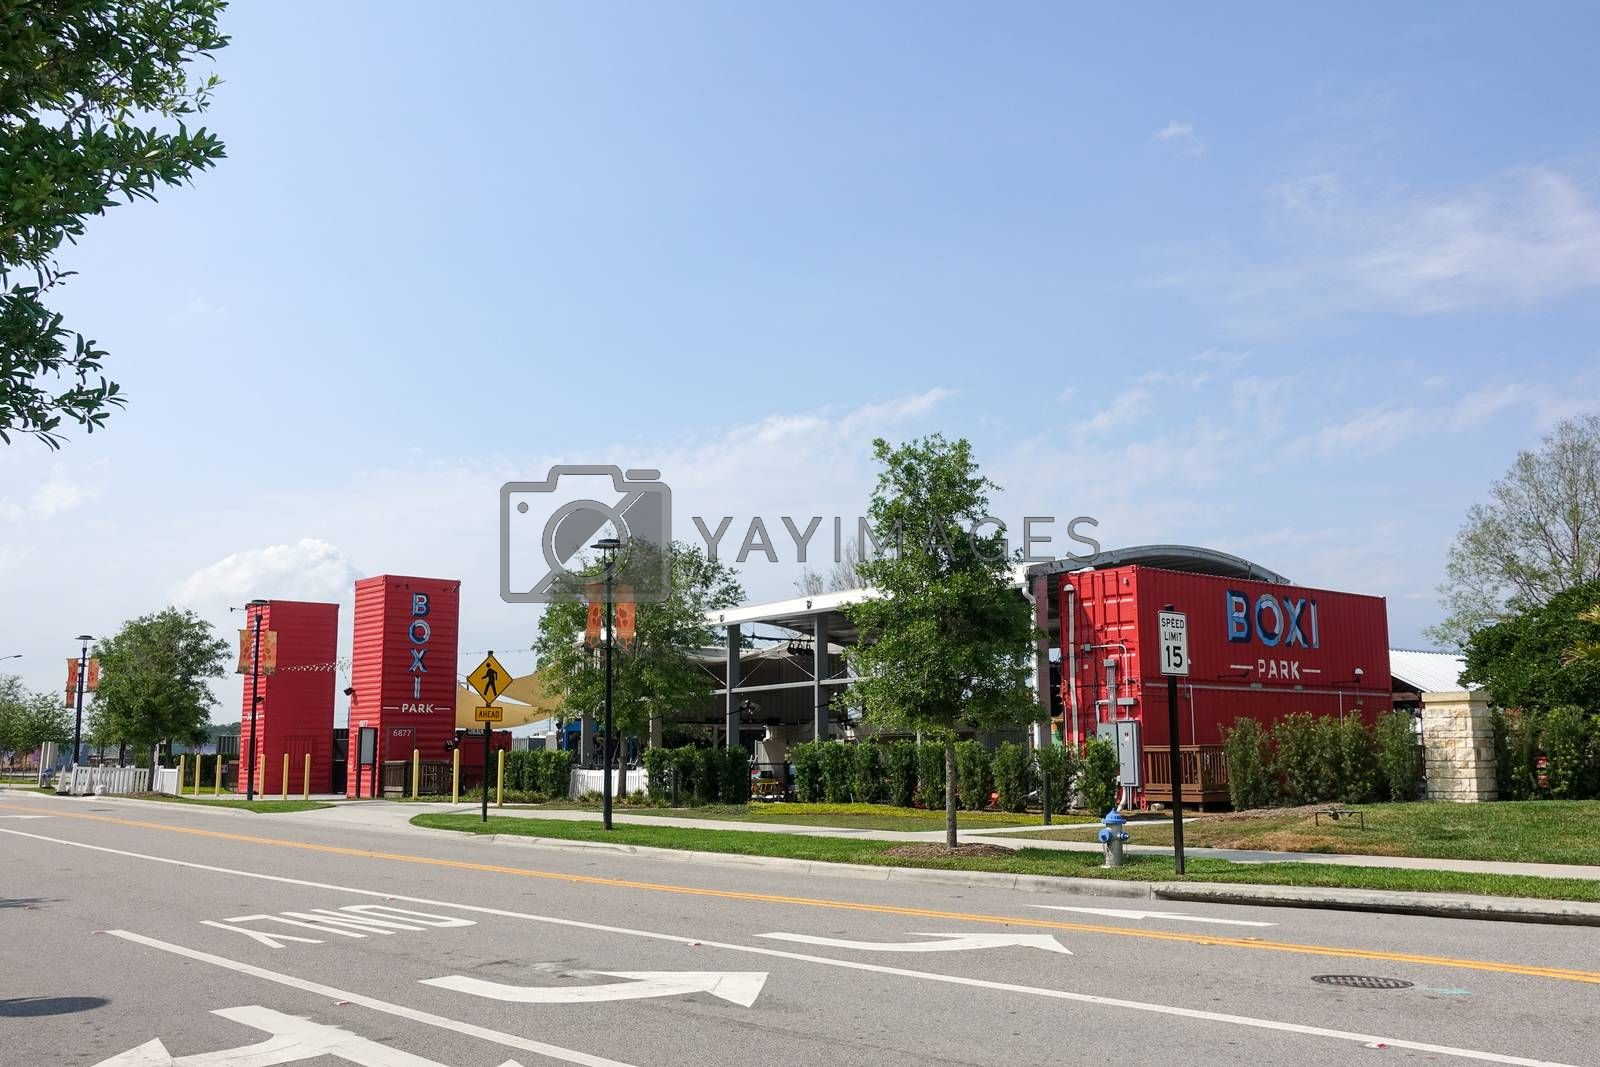 Orlando, FL/USA-4/10/20:  The exterior of Boxi Park a group of repurposed shipping containers that are grouped together to make up an outdoor restaurant, bar and entertainment venue in Lake Nona in Orlando, Florida.